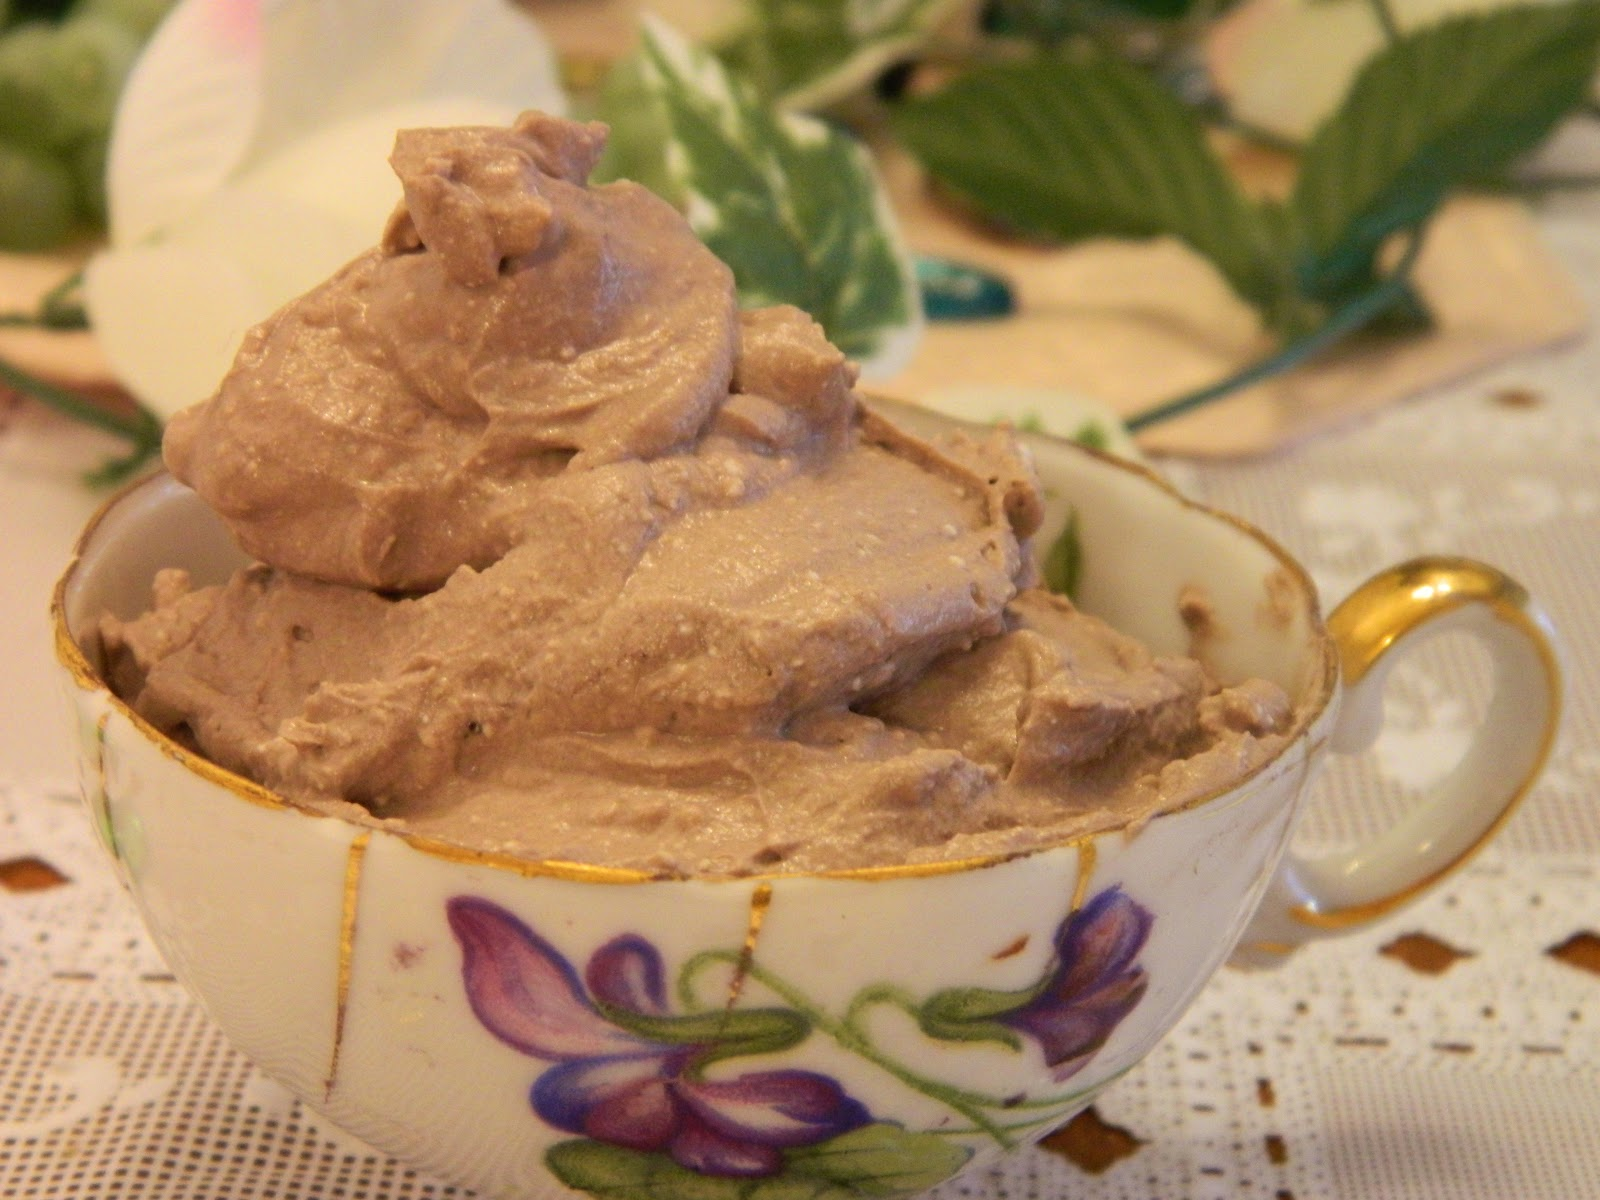 Ginnys low carb kitchen quark flax oil and chocolate mousse quark flax oil and chocolate mousse ccuart Gallery